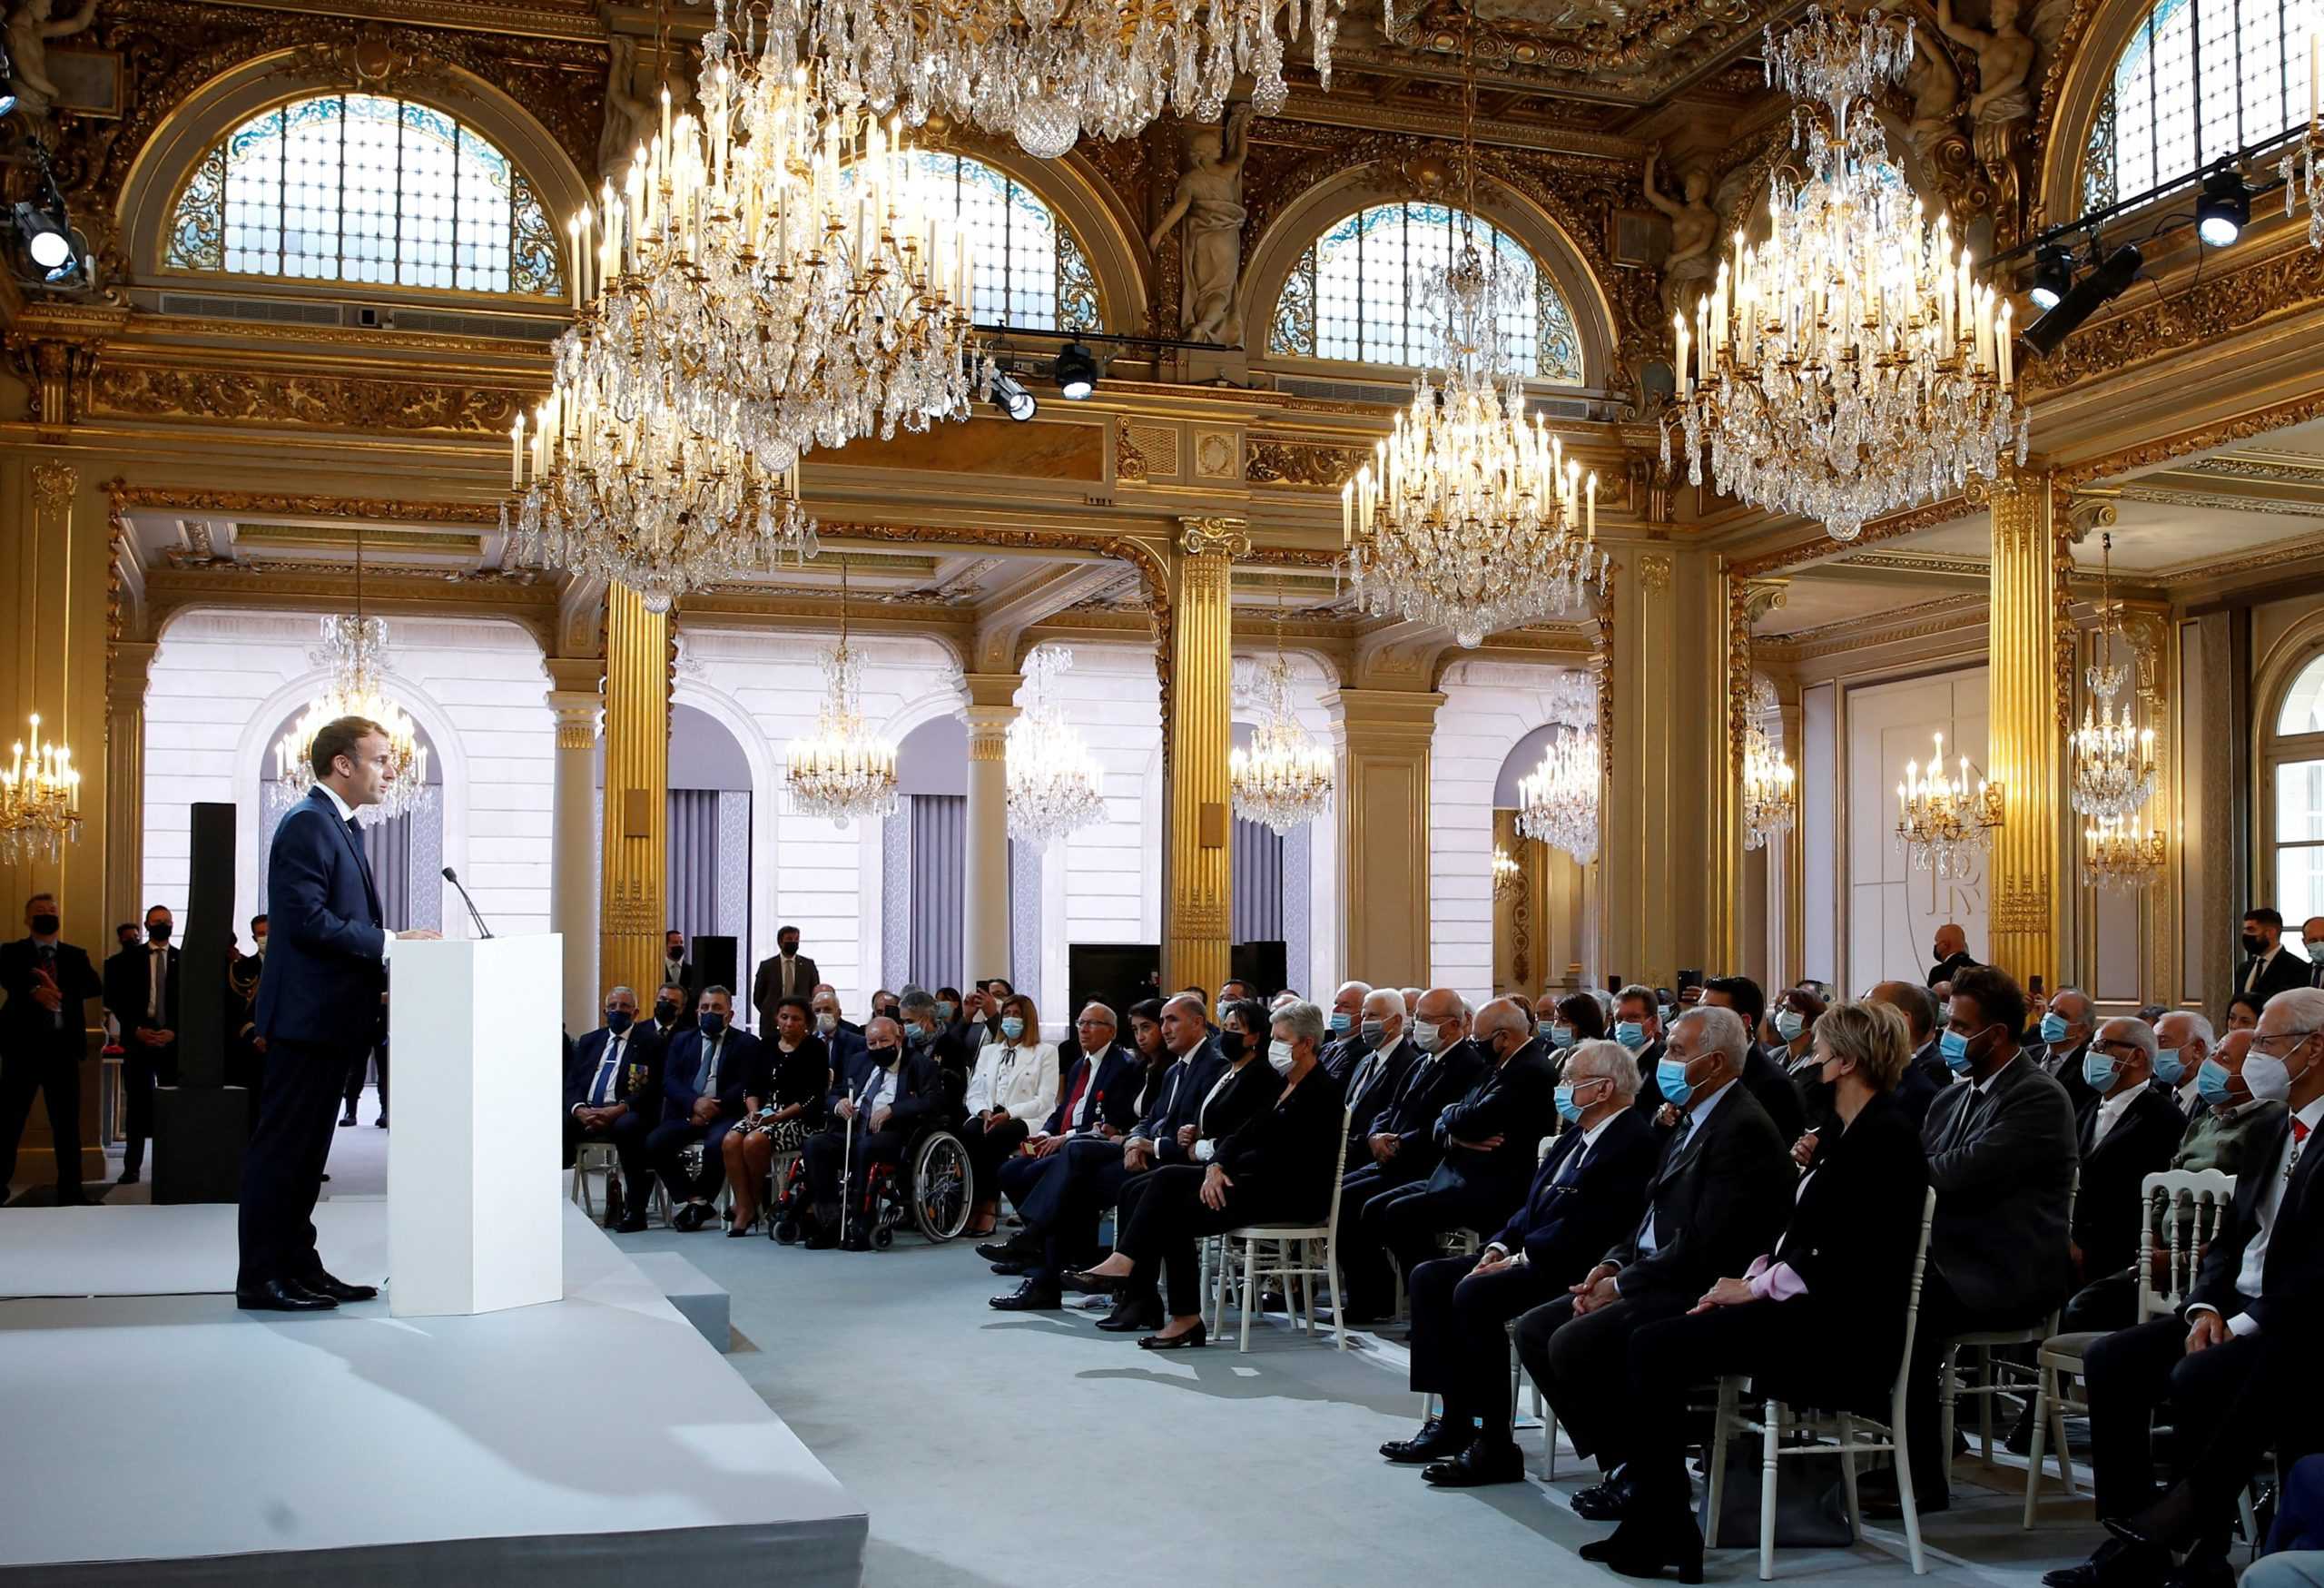 French president Emmanuel Macron delivers a speech during a ceremony in memory of the Harkis, Algerians who helped the French Army in the Algerian War of Independence, at the Elysee Palace in Paris, on September 20, 2021. (Photo by GONZALO FUENTES / POOL / AFP) (Photo by GONZALO FUENTES/POOL/AFP via Getty Images)